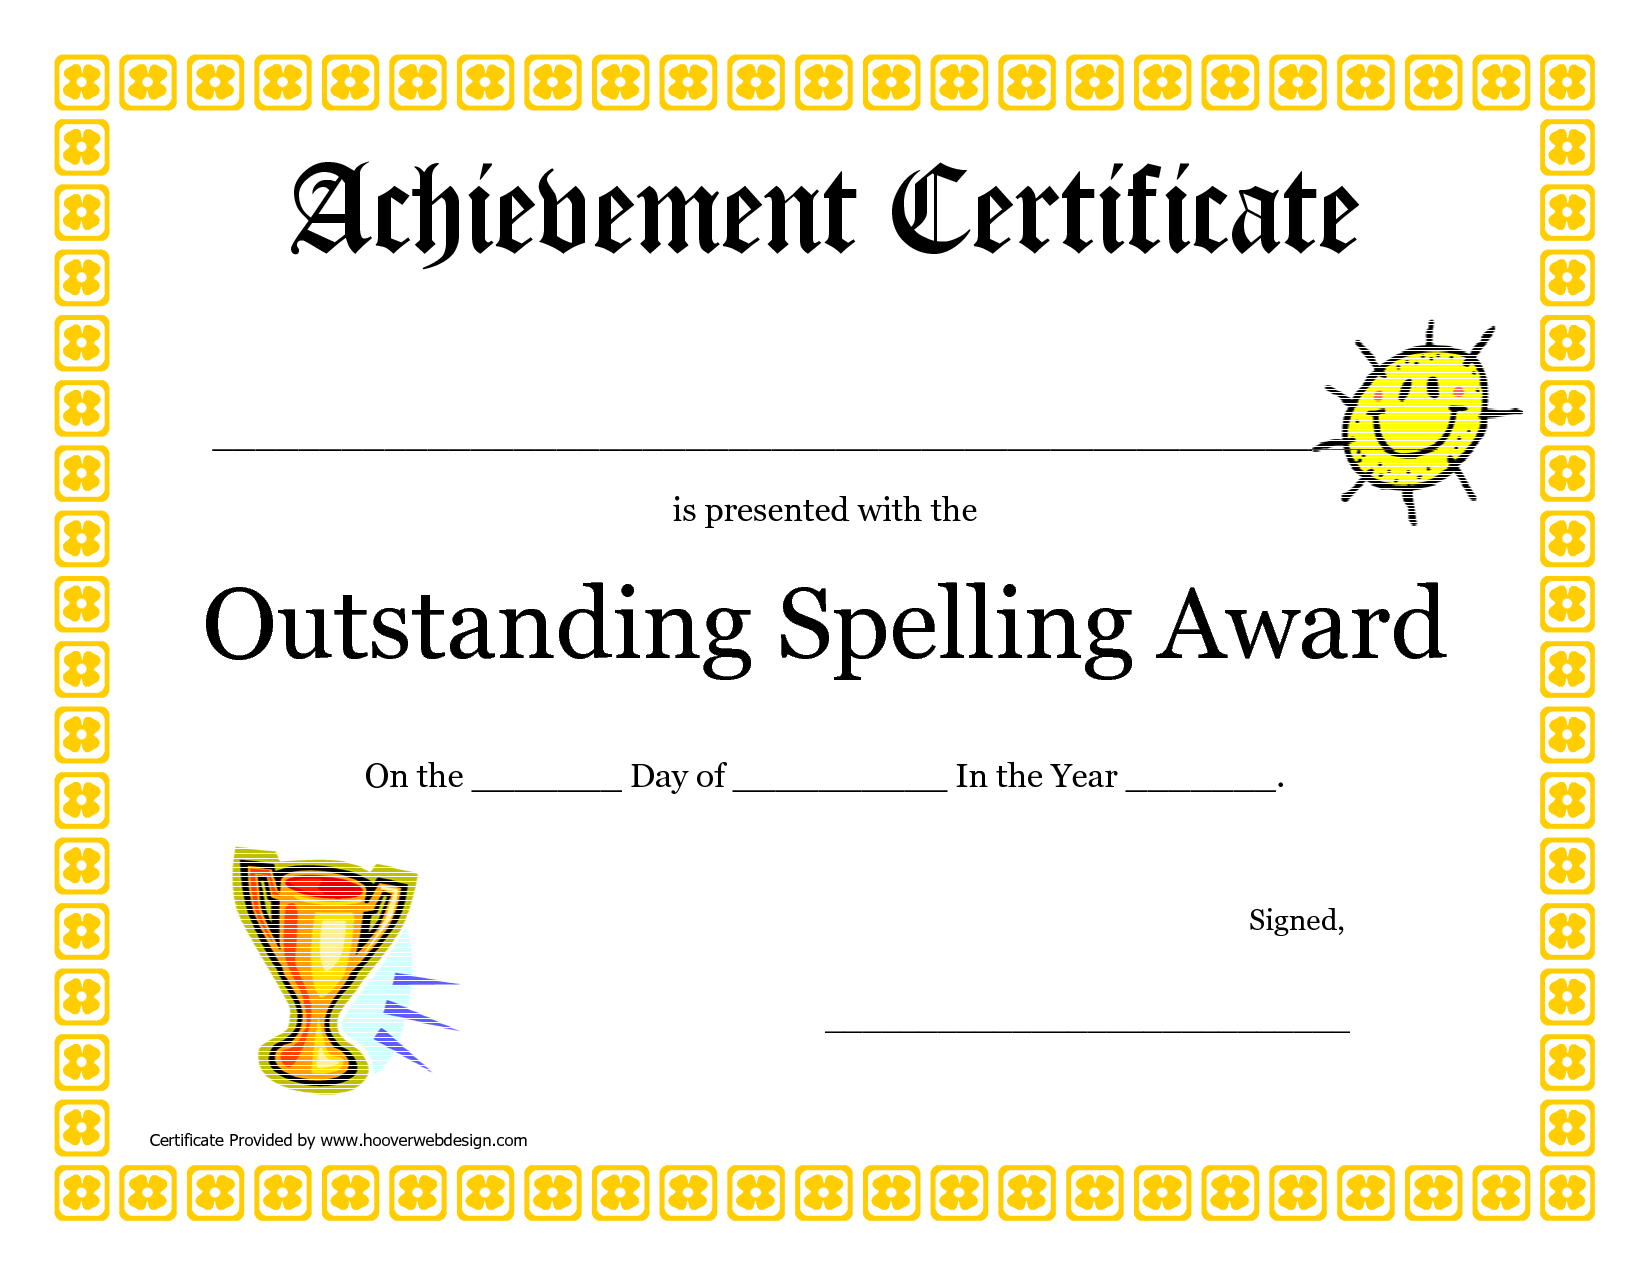 Outstanding Spelling Award Printable Certificate Pdf Picture With Regard To Spelling Bee Award Certificate Template